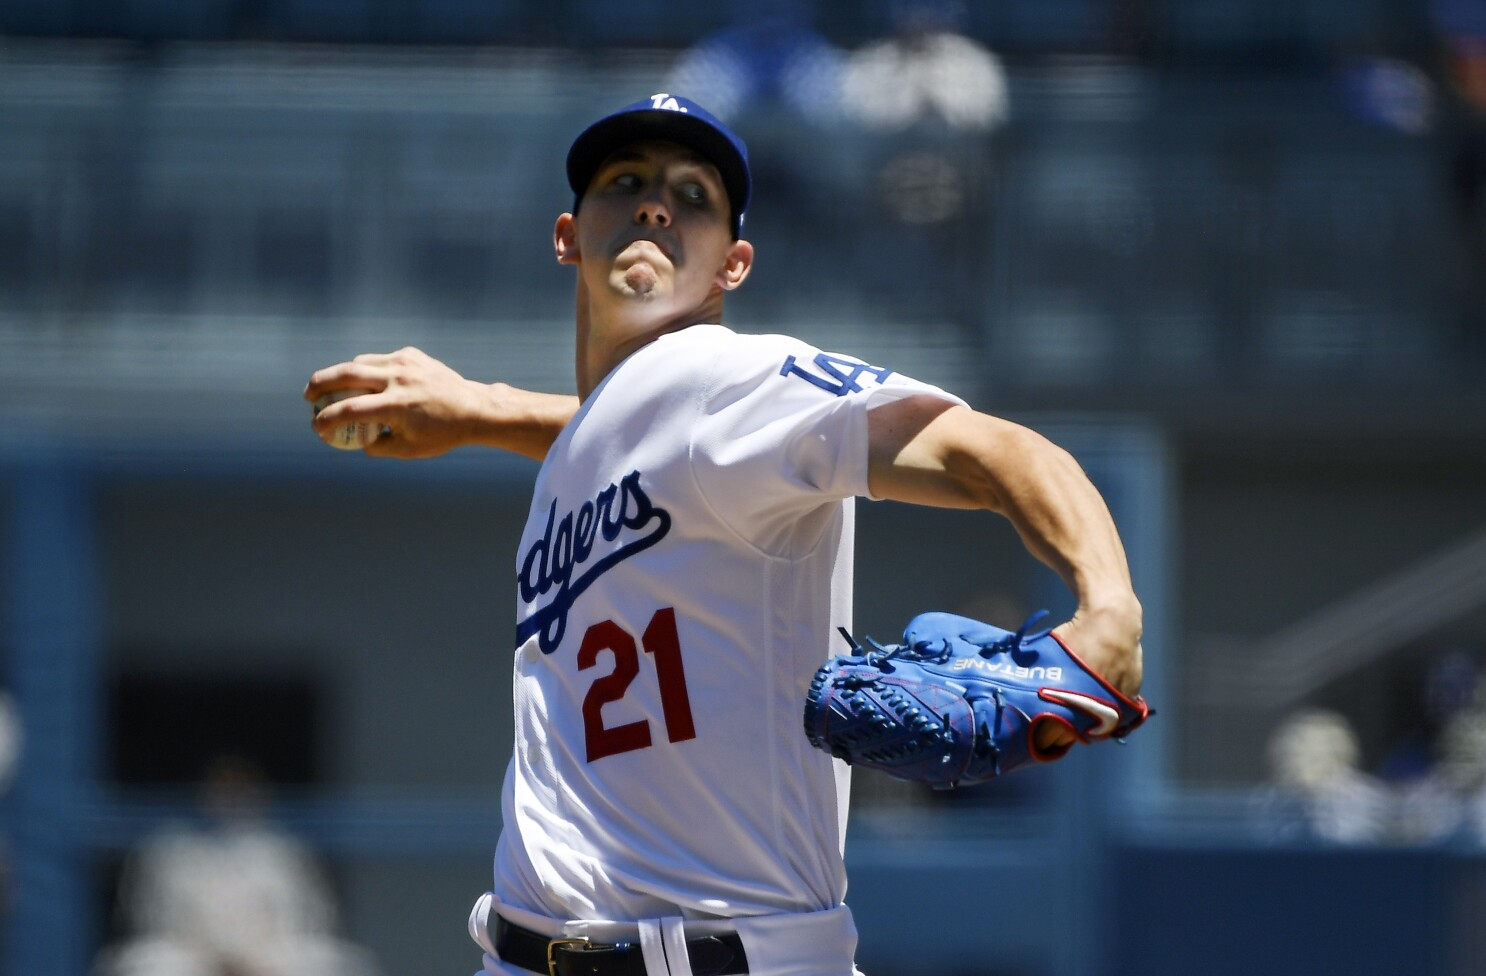 Walker Buehler shuts down Marlins to complete the sweep for Dodgers